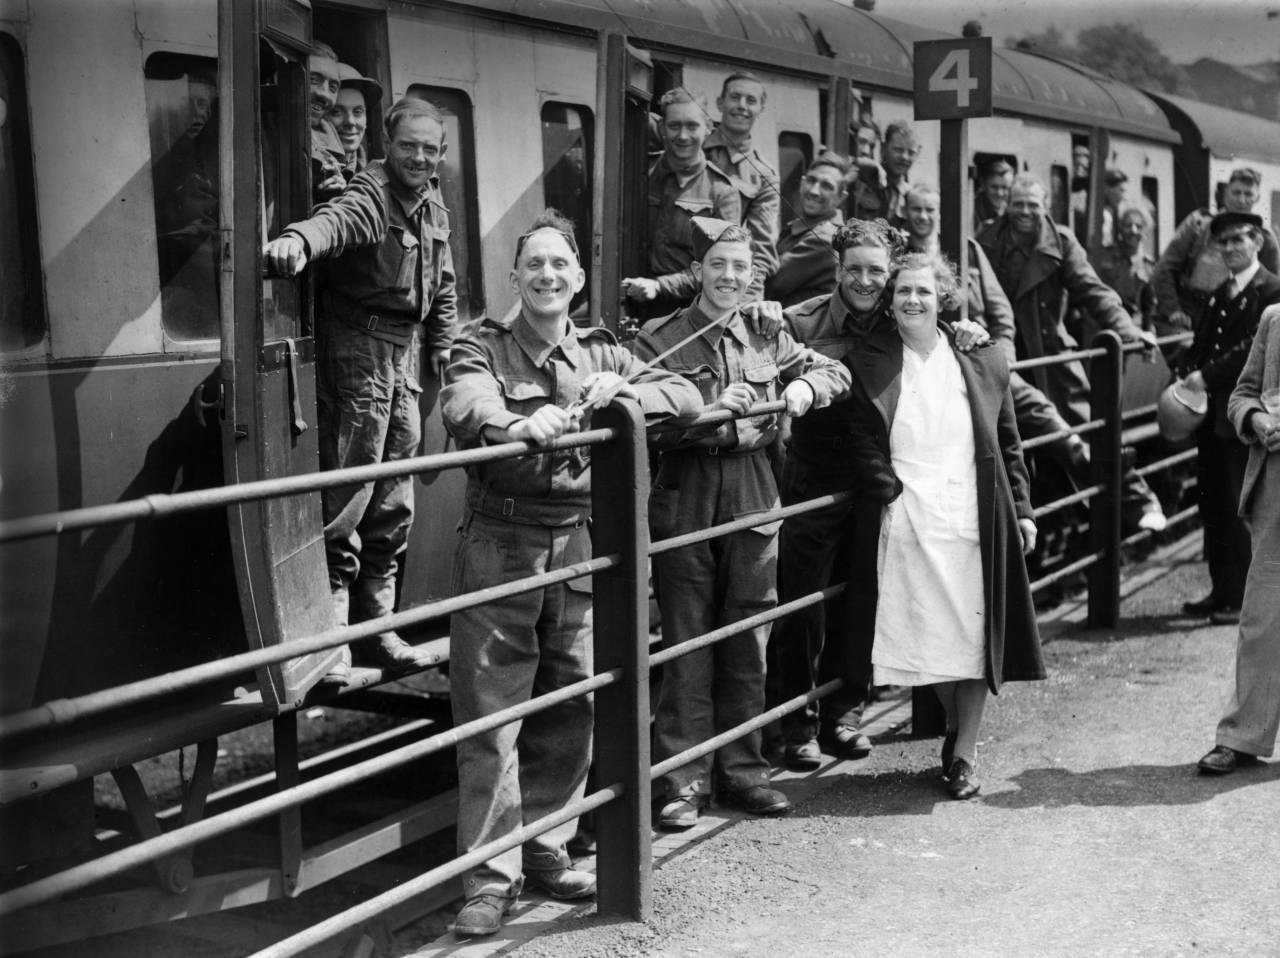 31st May 1940: Members of the BEF (British Expeditionary Force) smiling happily at a halt in their journey as they arrive safely in England after escape from Dunkirk. (Photo by Topical Press Agency/Getty Images)